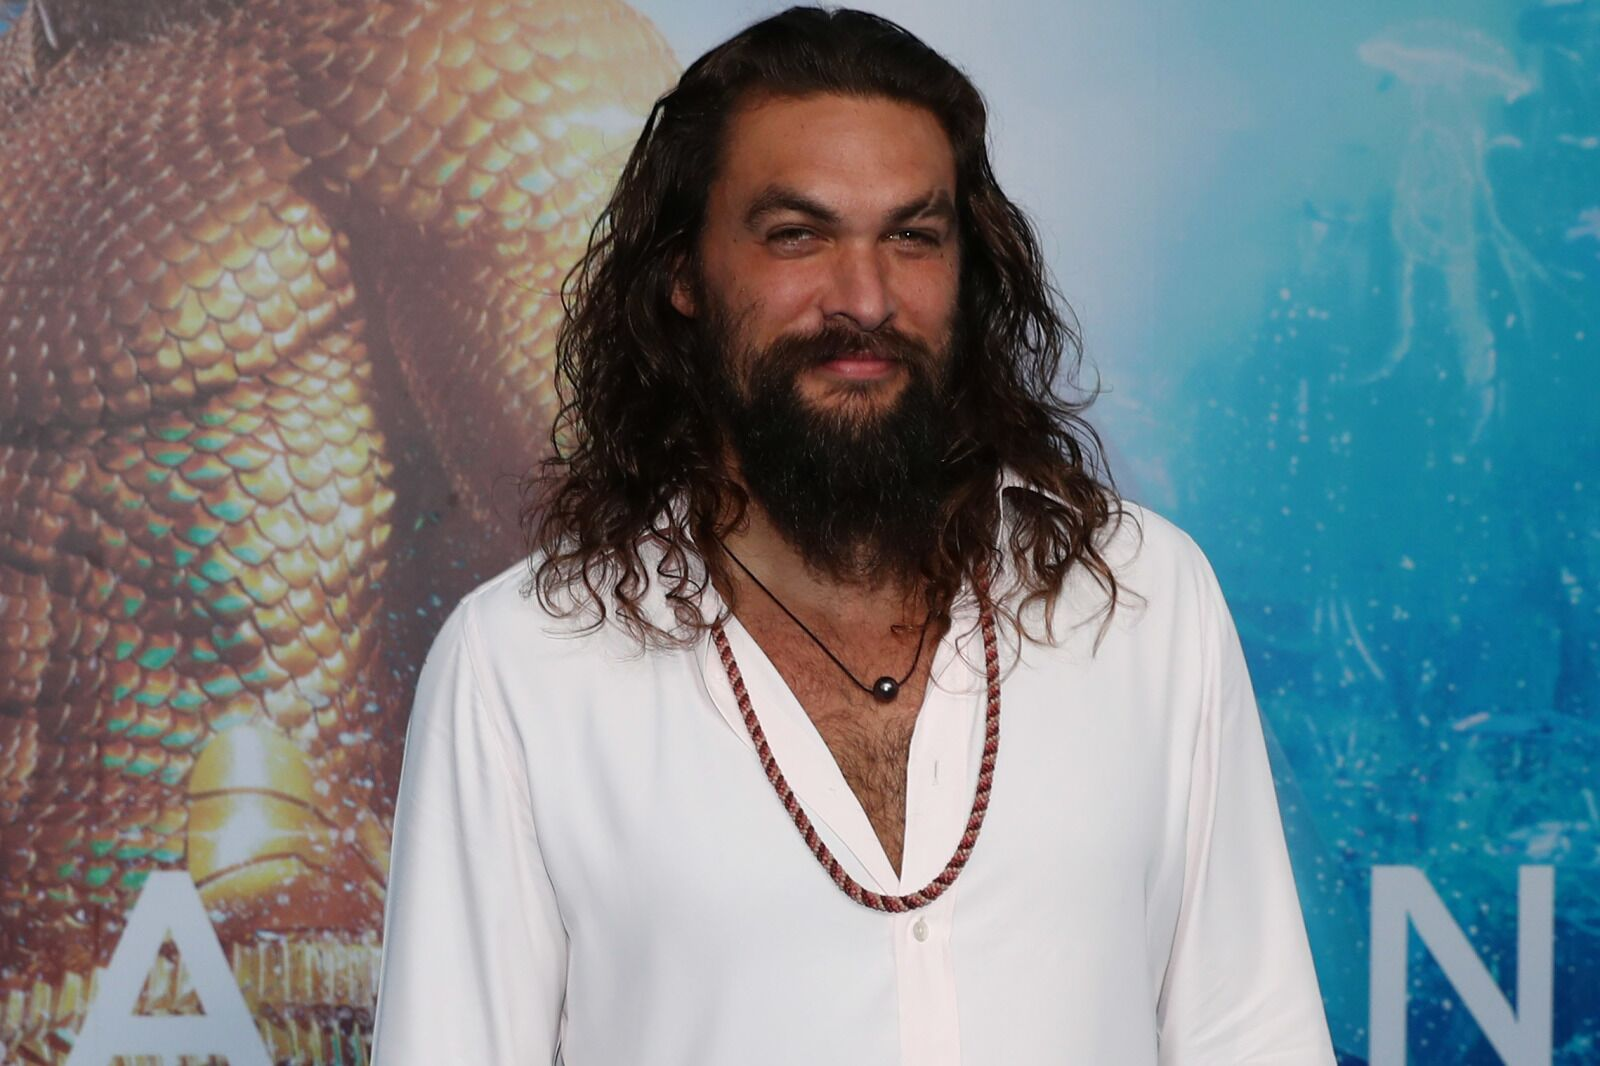 See: Apple TV+ releases first trailer for Jason Momoa's drama